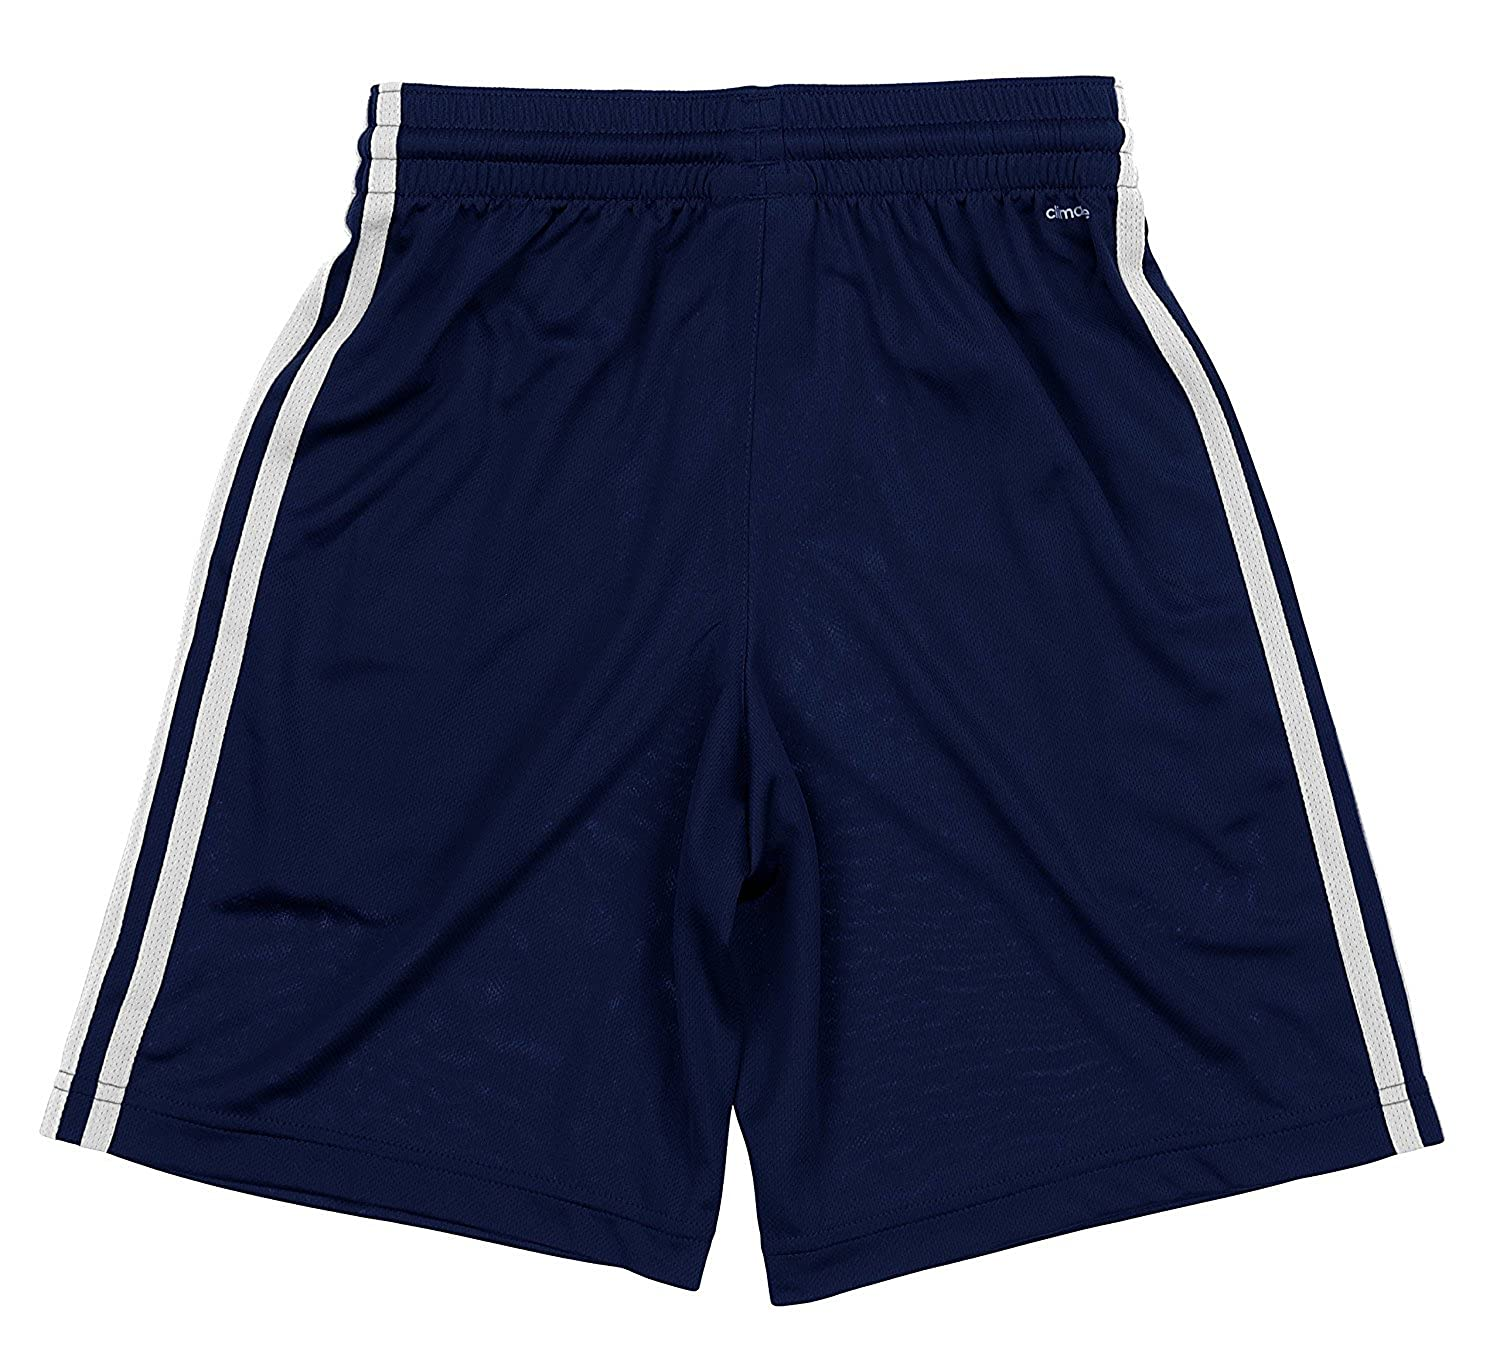 Amazon.com  Adidas Big Boys Youth Performance Climalite Shorts  Clothing 8a1c680d2d